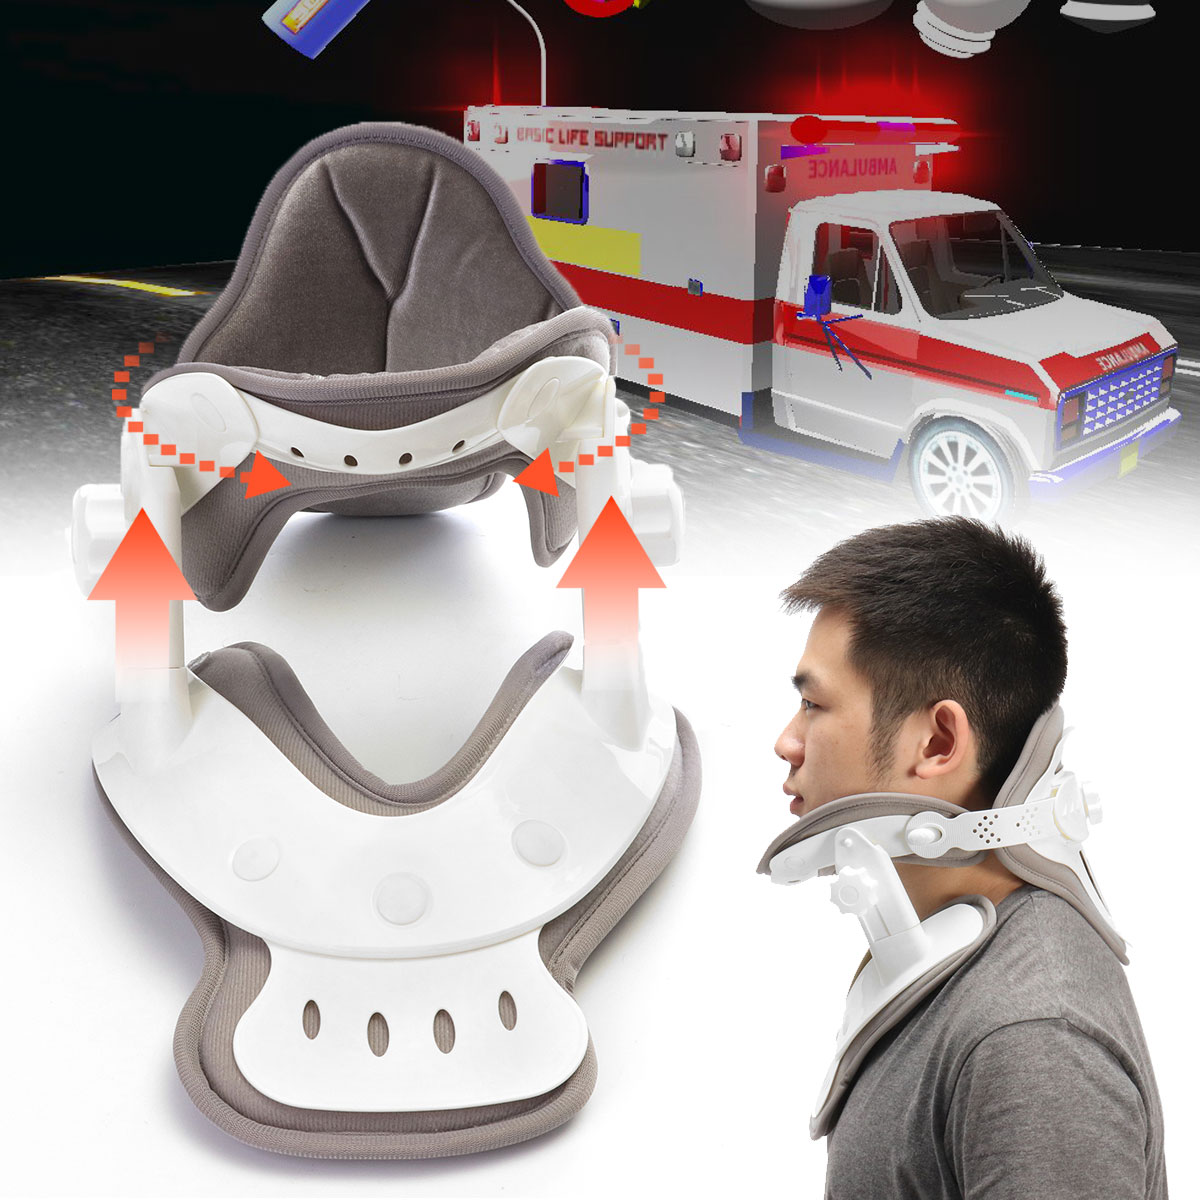 Household Hanging Neck Traction Device Stretched Cervical Traction Inflatable Spondylosis Orthopedic Neck Collar Stretch Machine hanriver cervical traction apparatus home stretch the neck fixed head neck collar correction neck inflatable lumbar spine